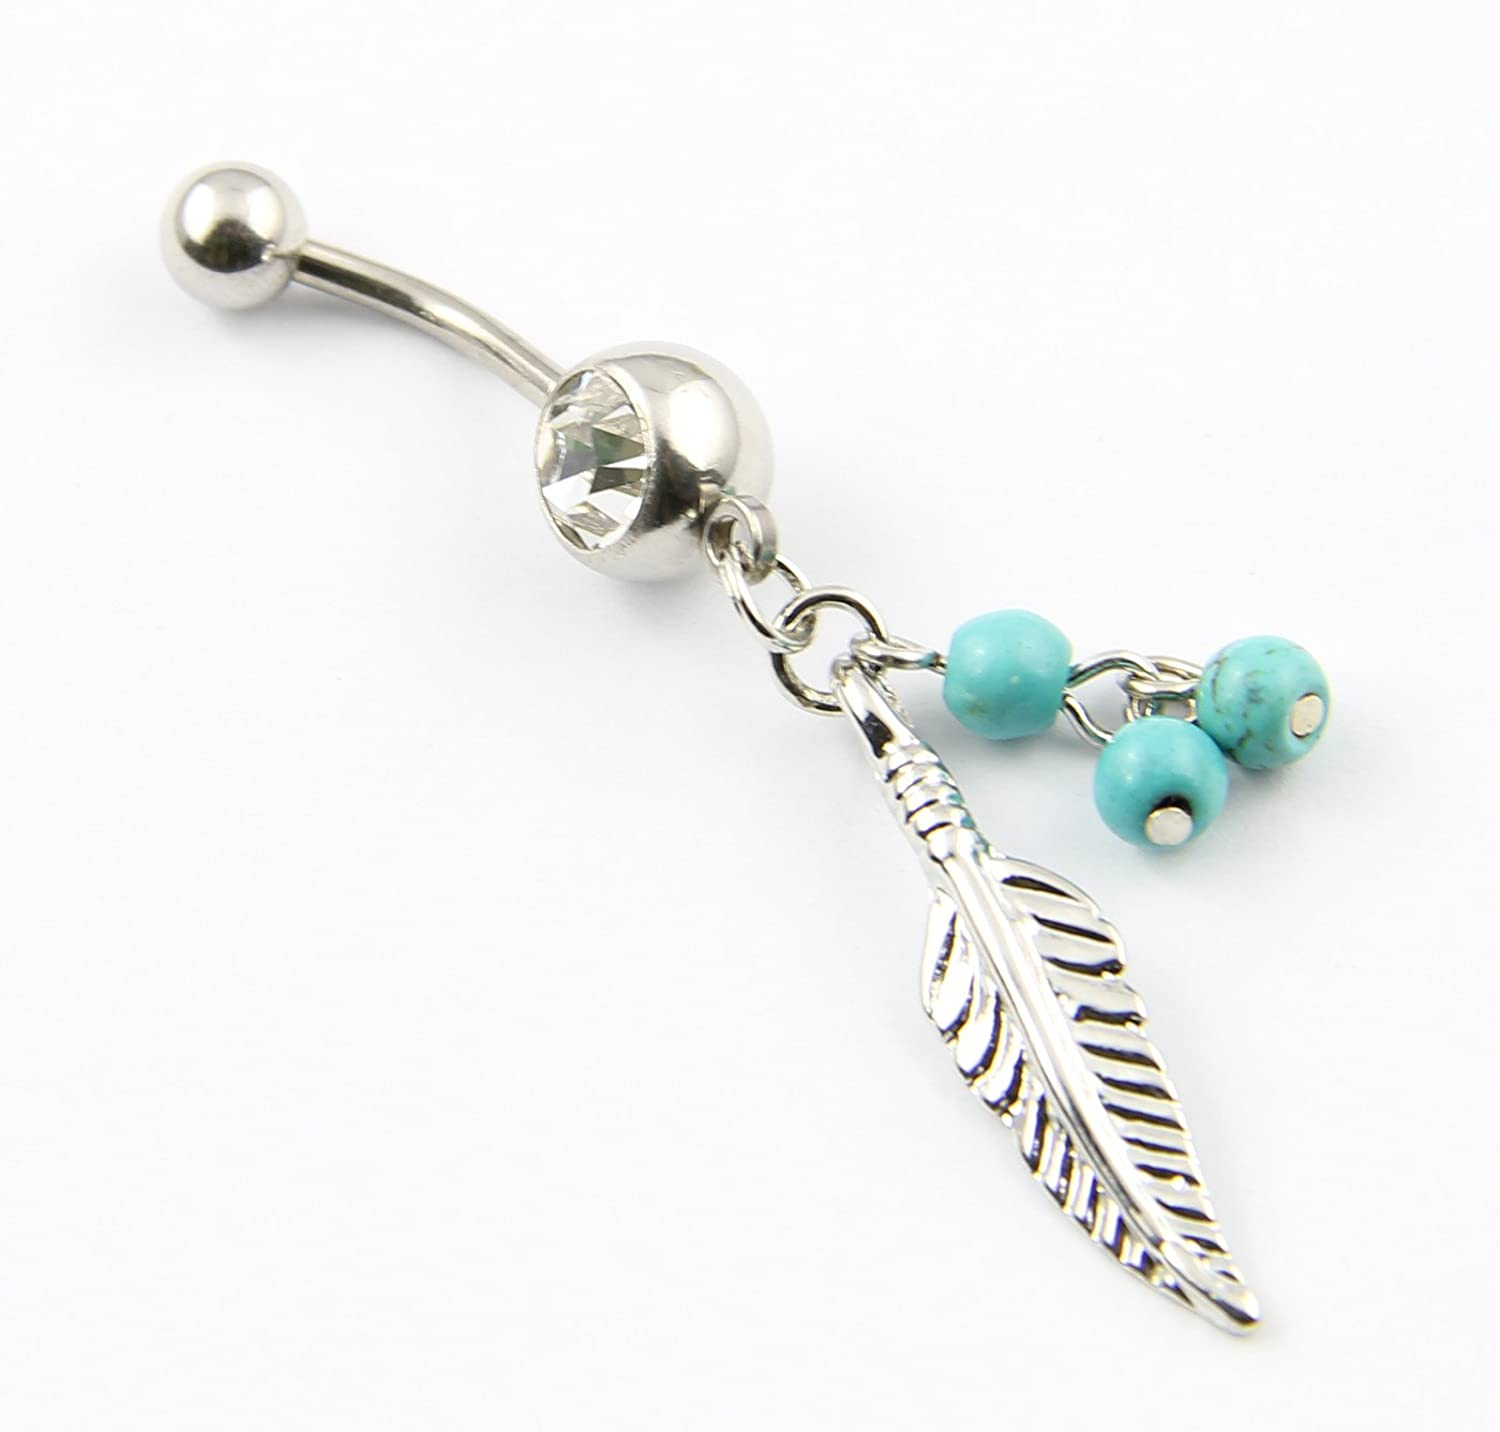 Long Belly Button Rings – Ultimate-Ashlee